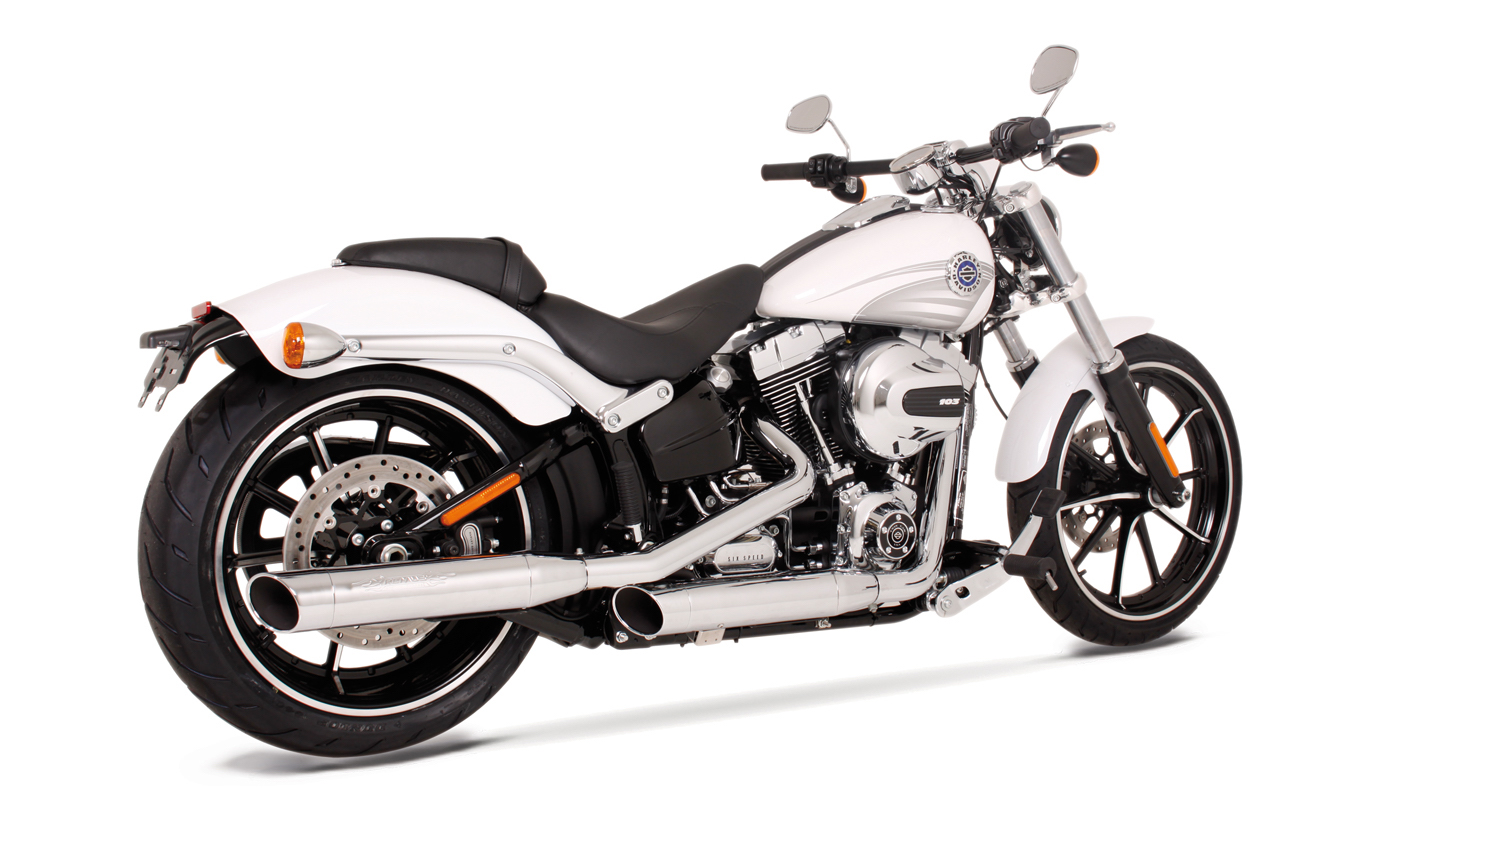 remus news bike info 19 17 harley davidson softail. Black Bedroom Furniture Sets. Home Design Ideas